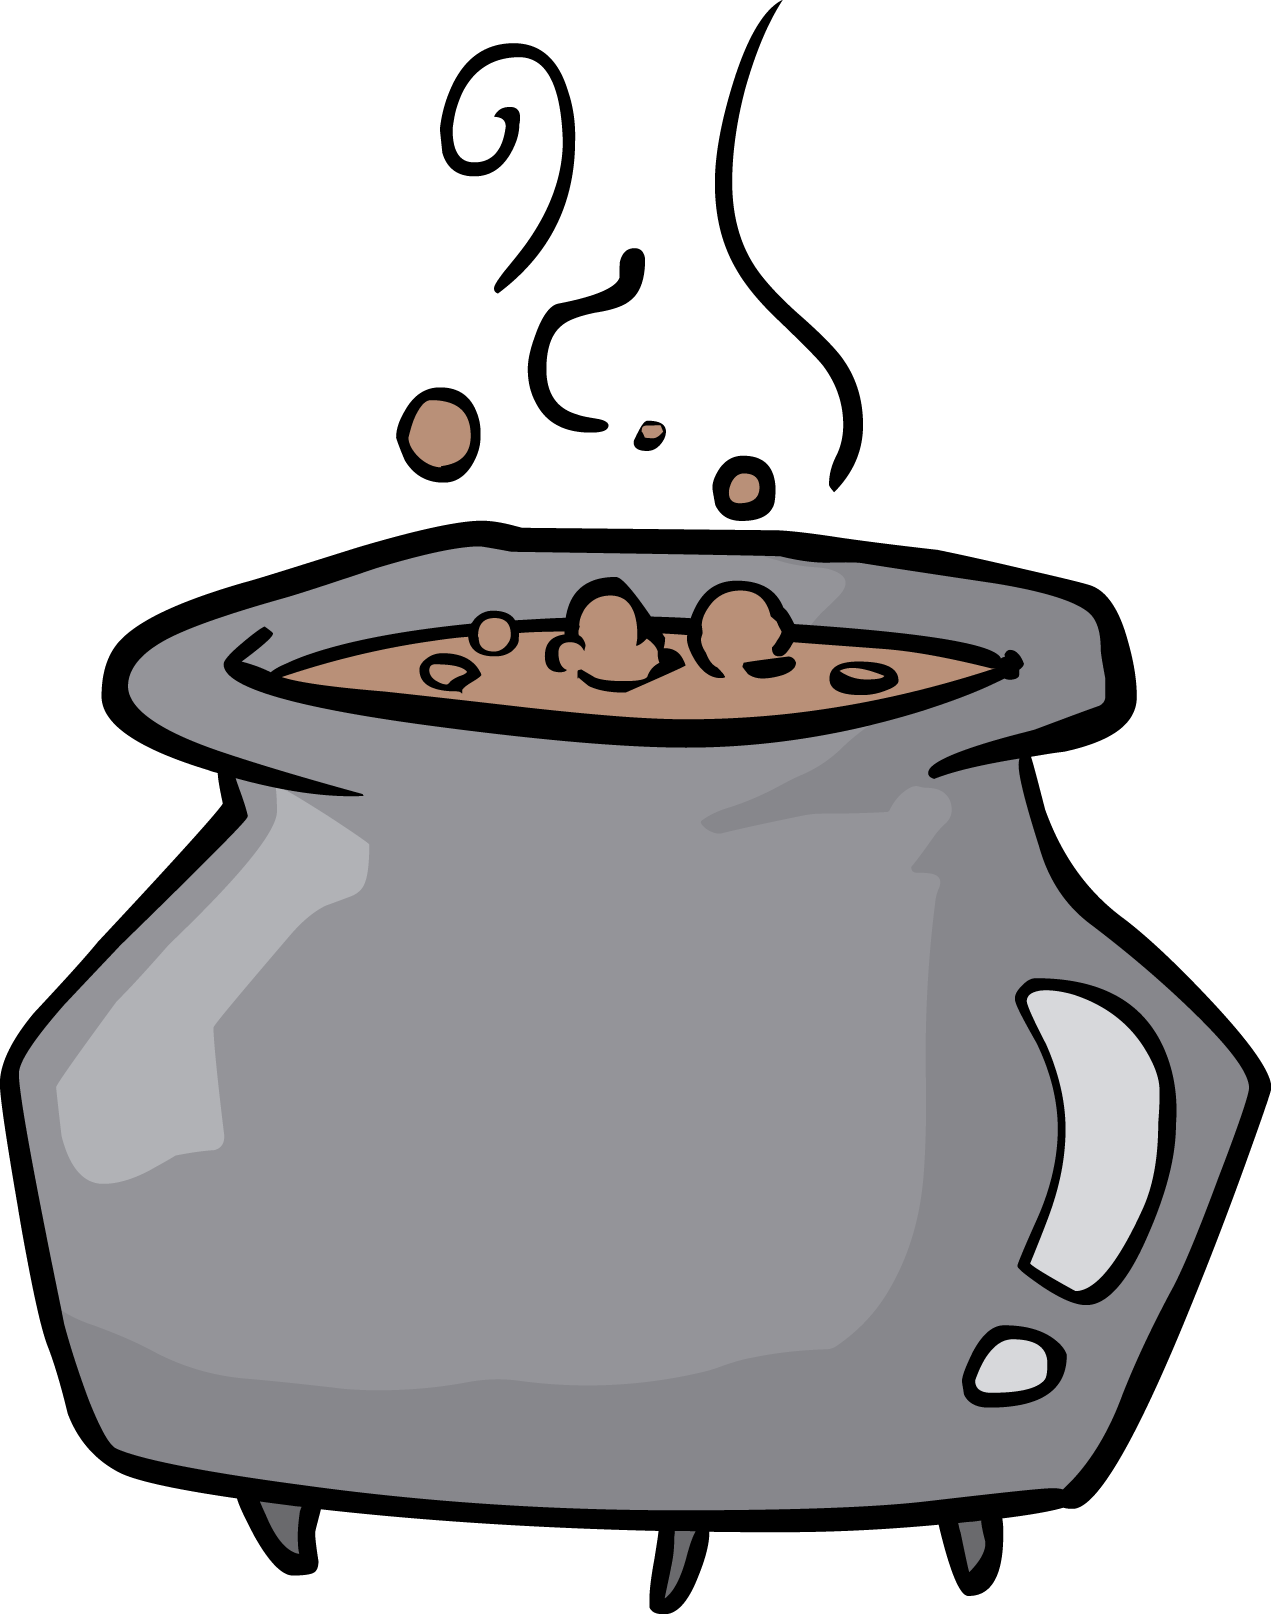 Monster clipart water. Free boiling images download